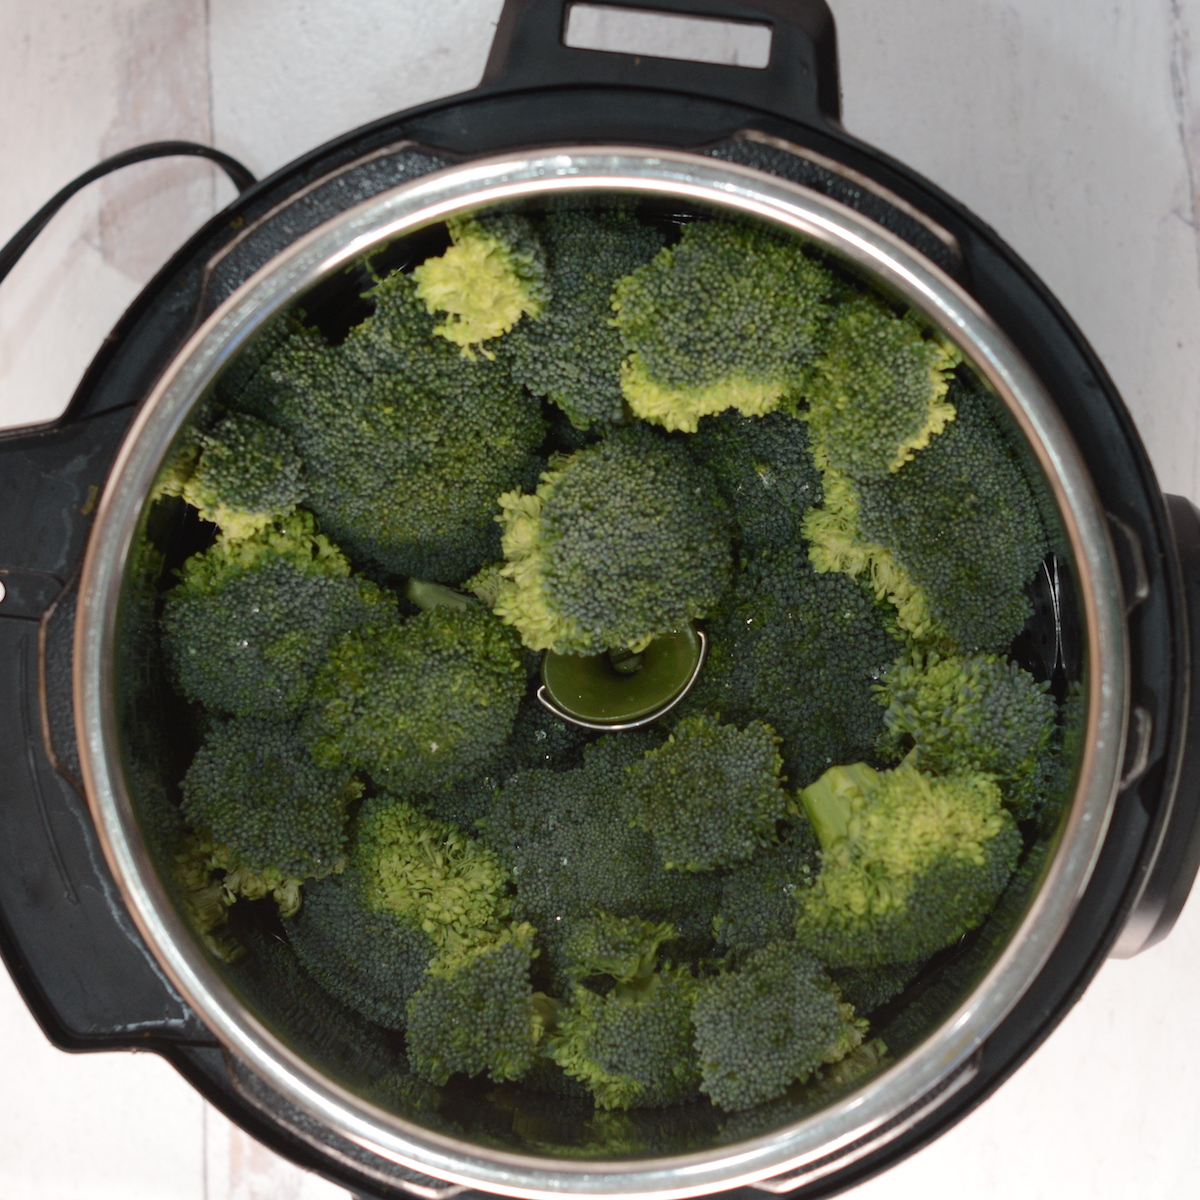 uncooked broccoli in instant pot